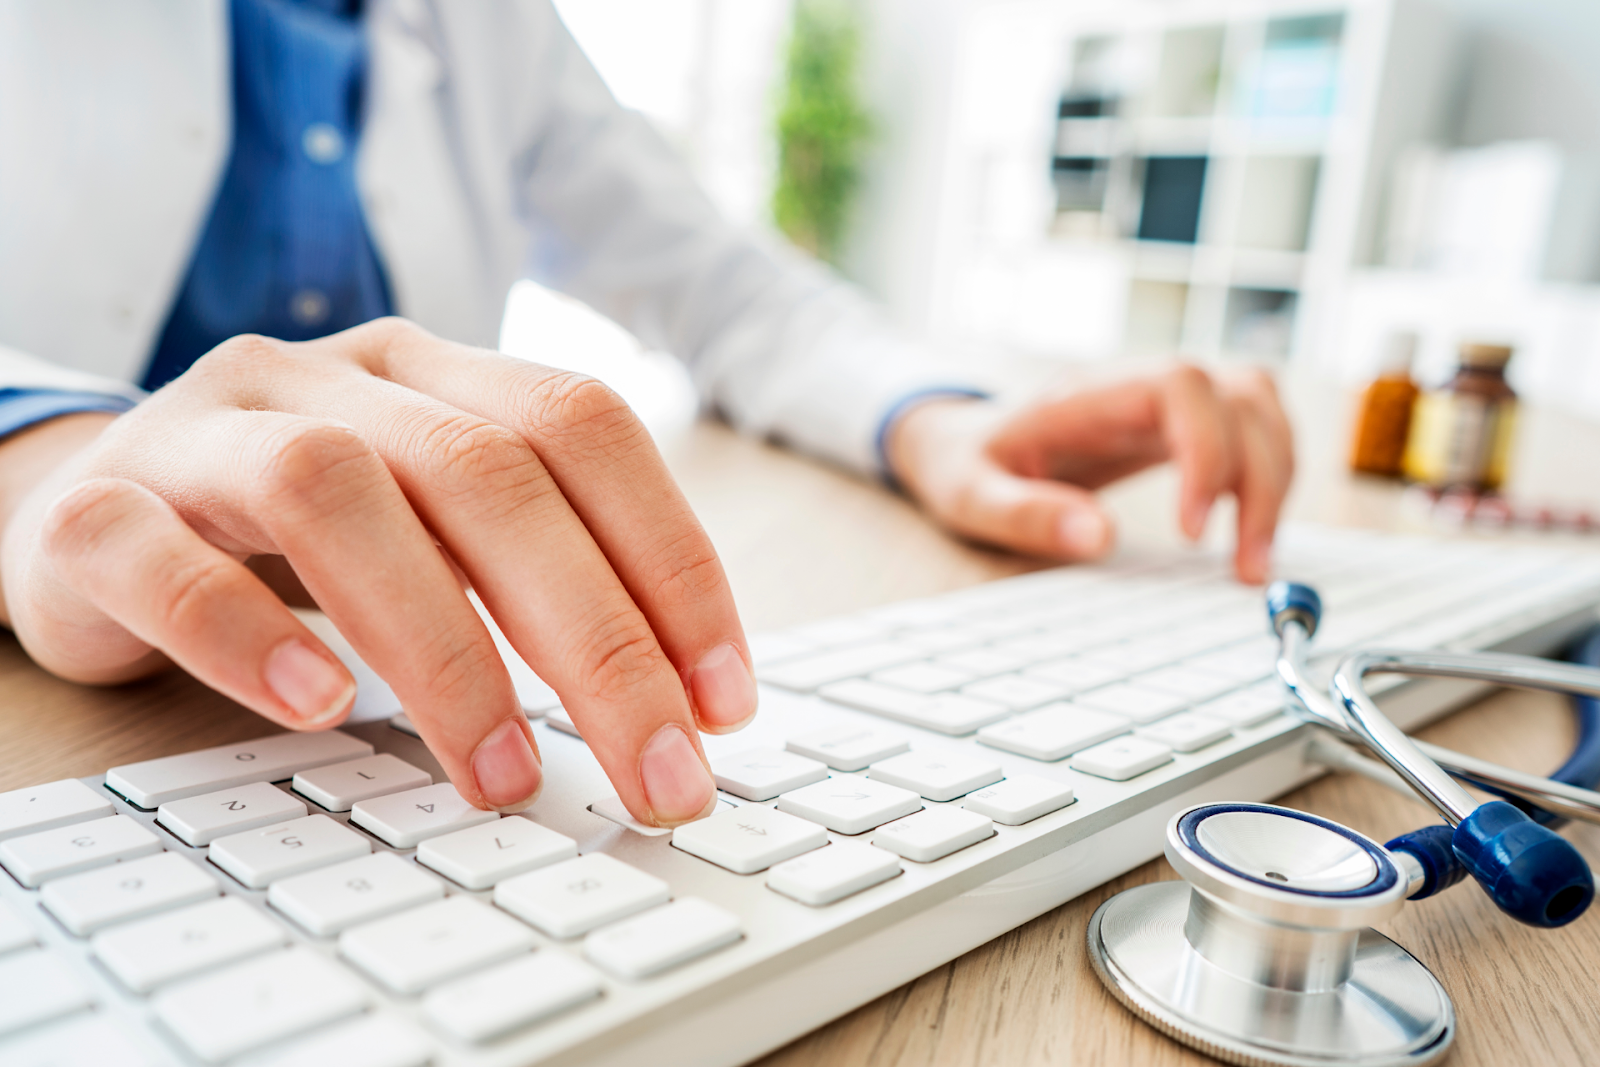 medical professional typing on computer